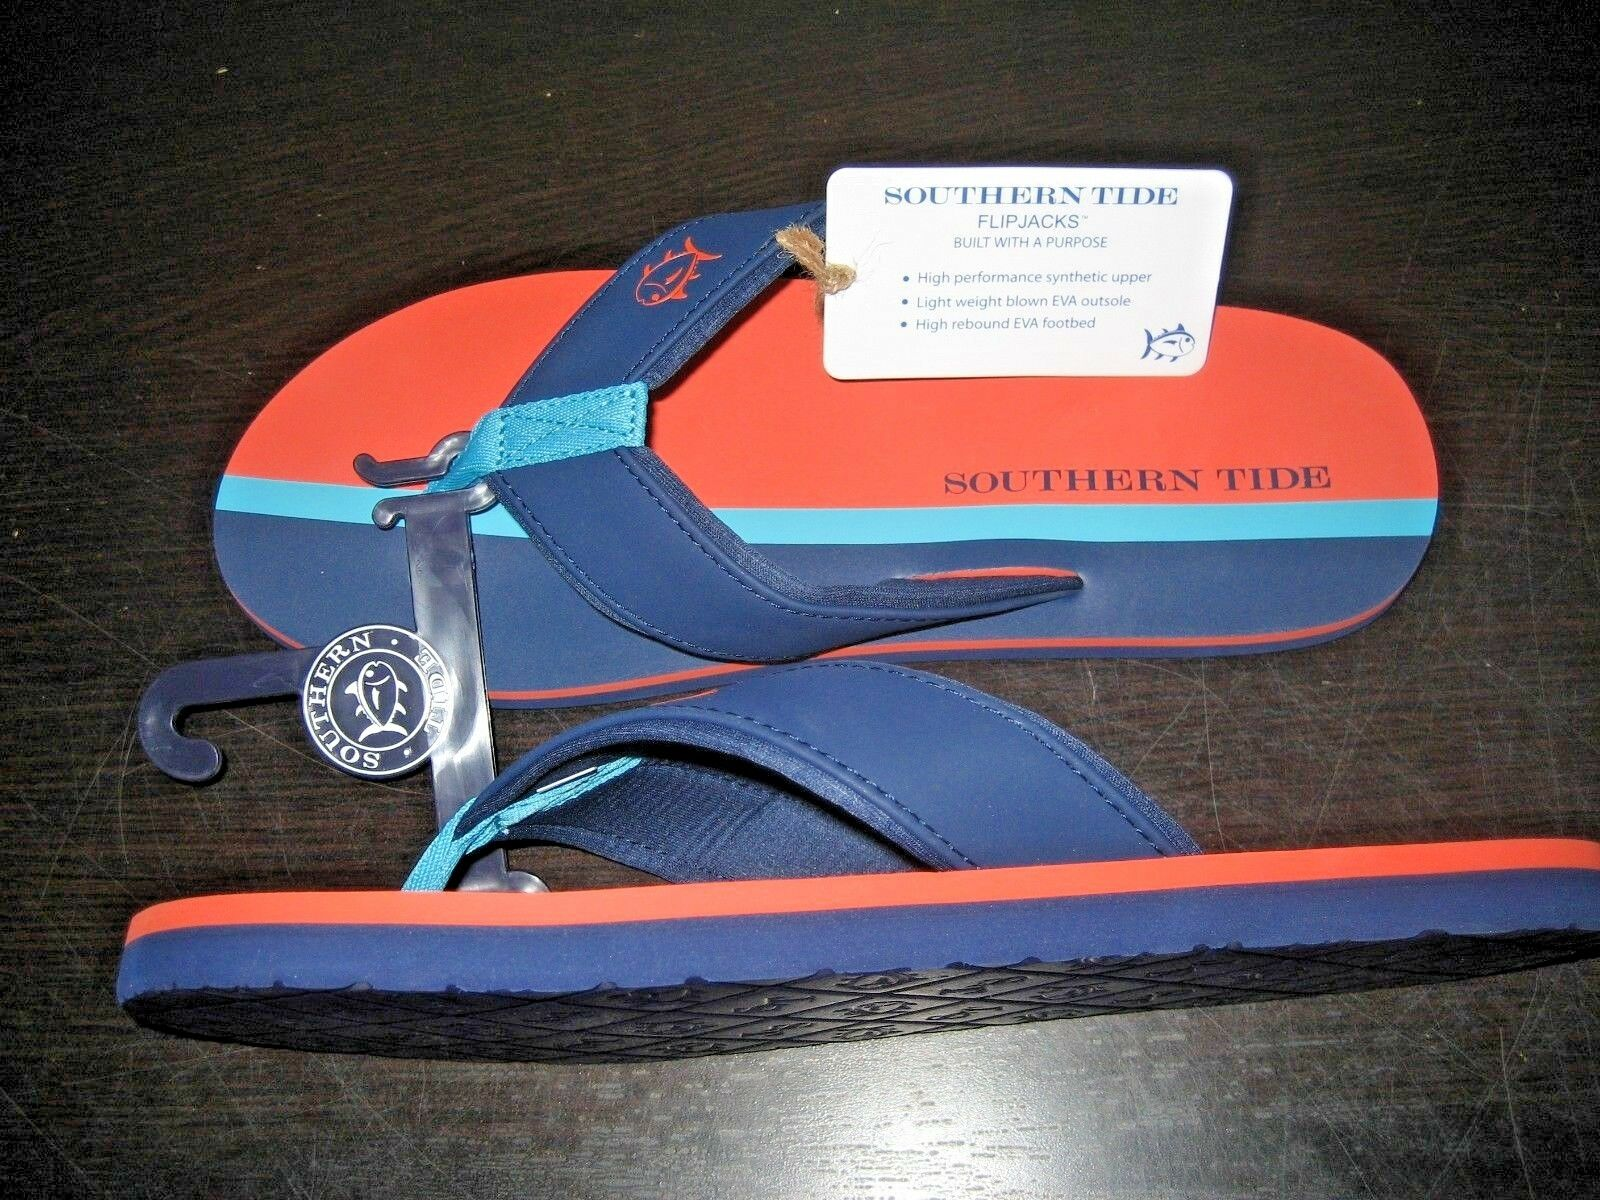 eb705fcf9dfc ... Southern Tide Mens Surfside Flipjacks Sandals Island Orange       Blue  NWT Free Ship c71cbb ...